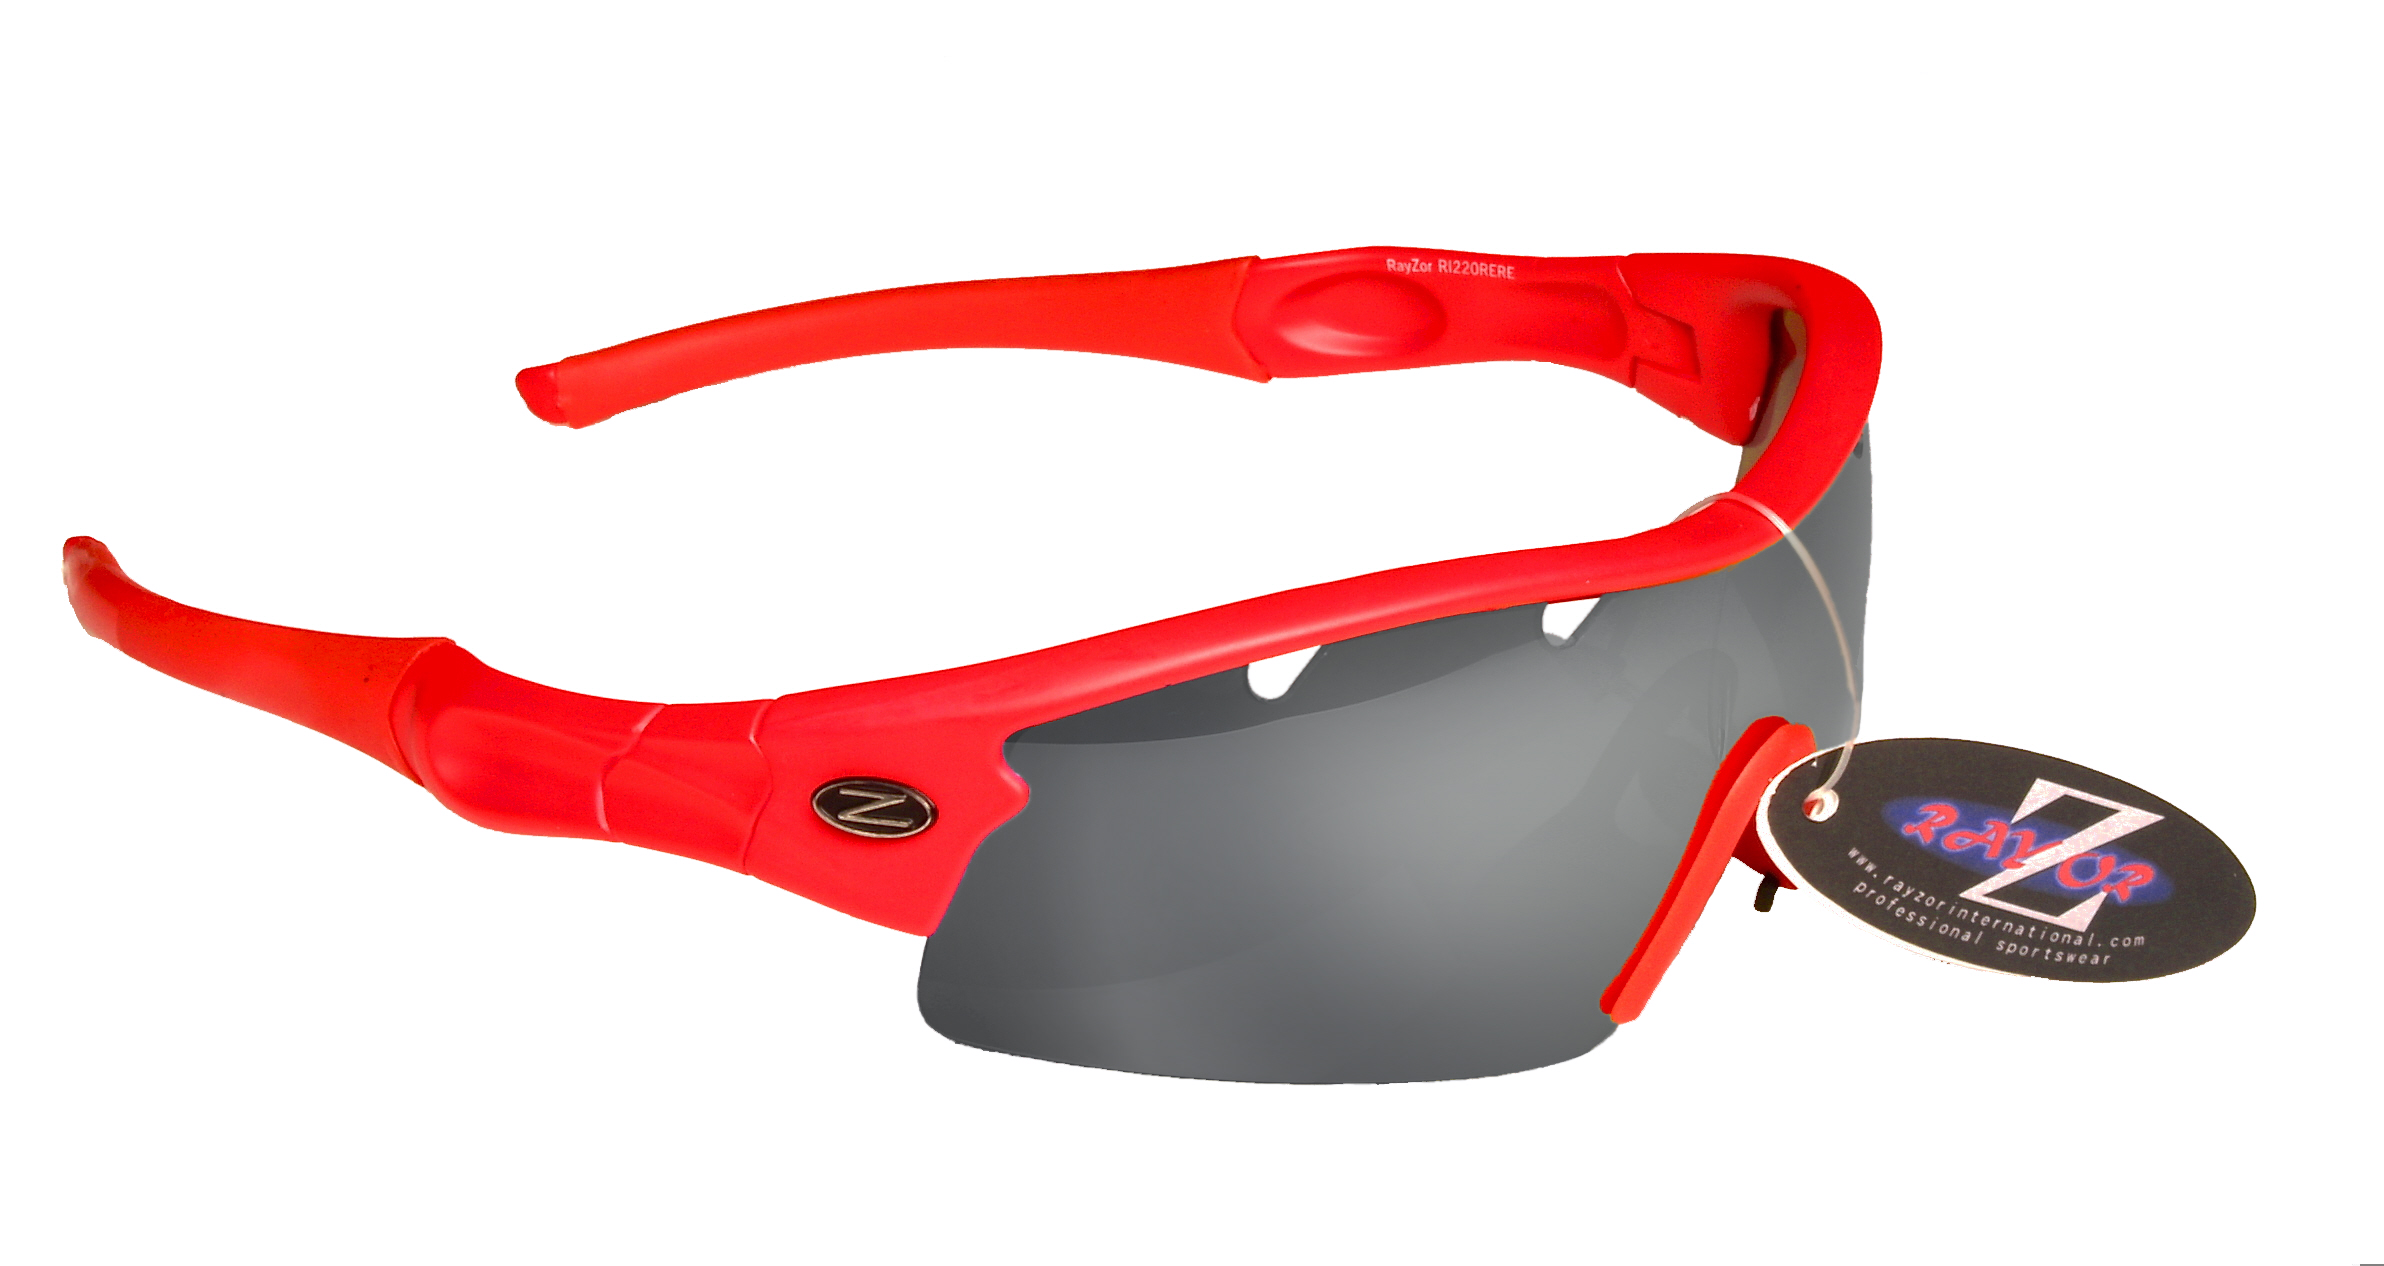 VENTZ: RAYZOR RED FRAMED SPORTS SUNGLASSES WITH A ONE PIECE VENTED SMOKE MIRRORED ANTI GLARE LENS.